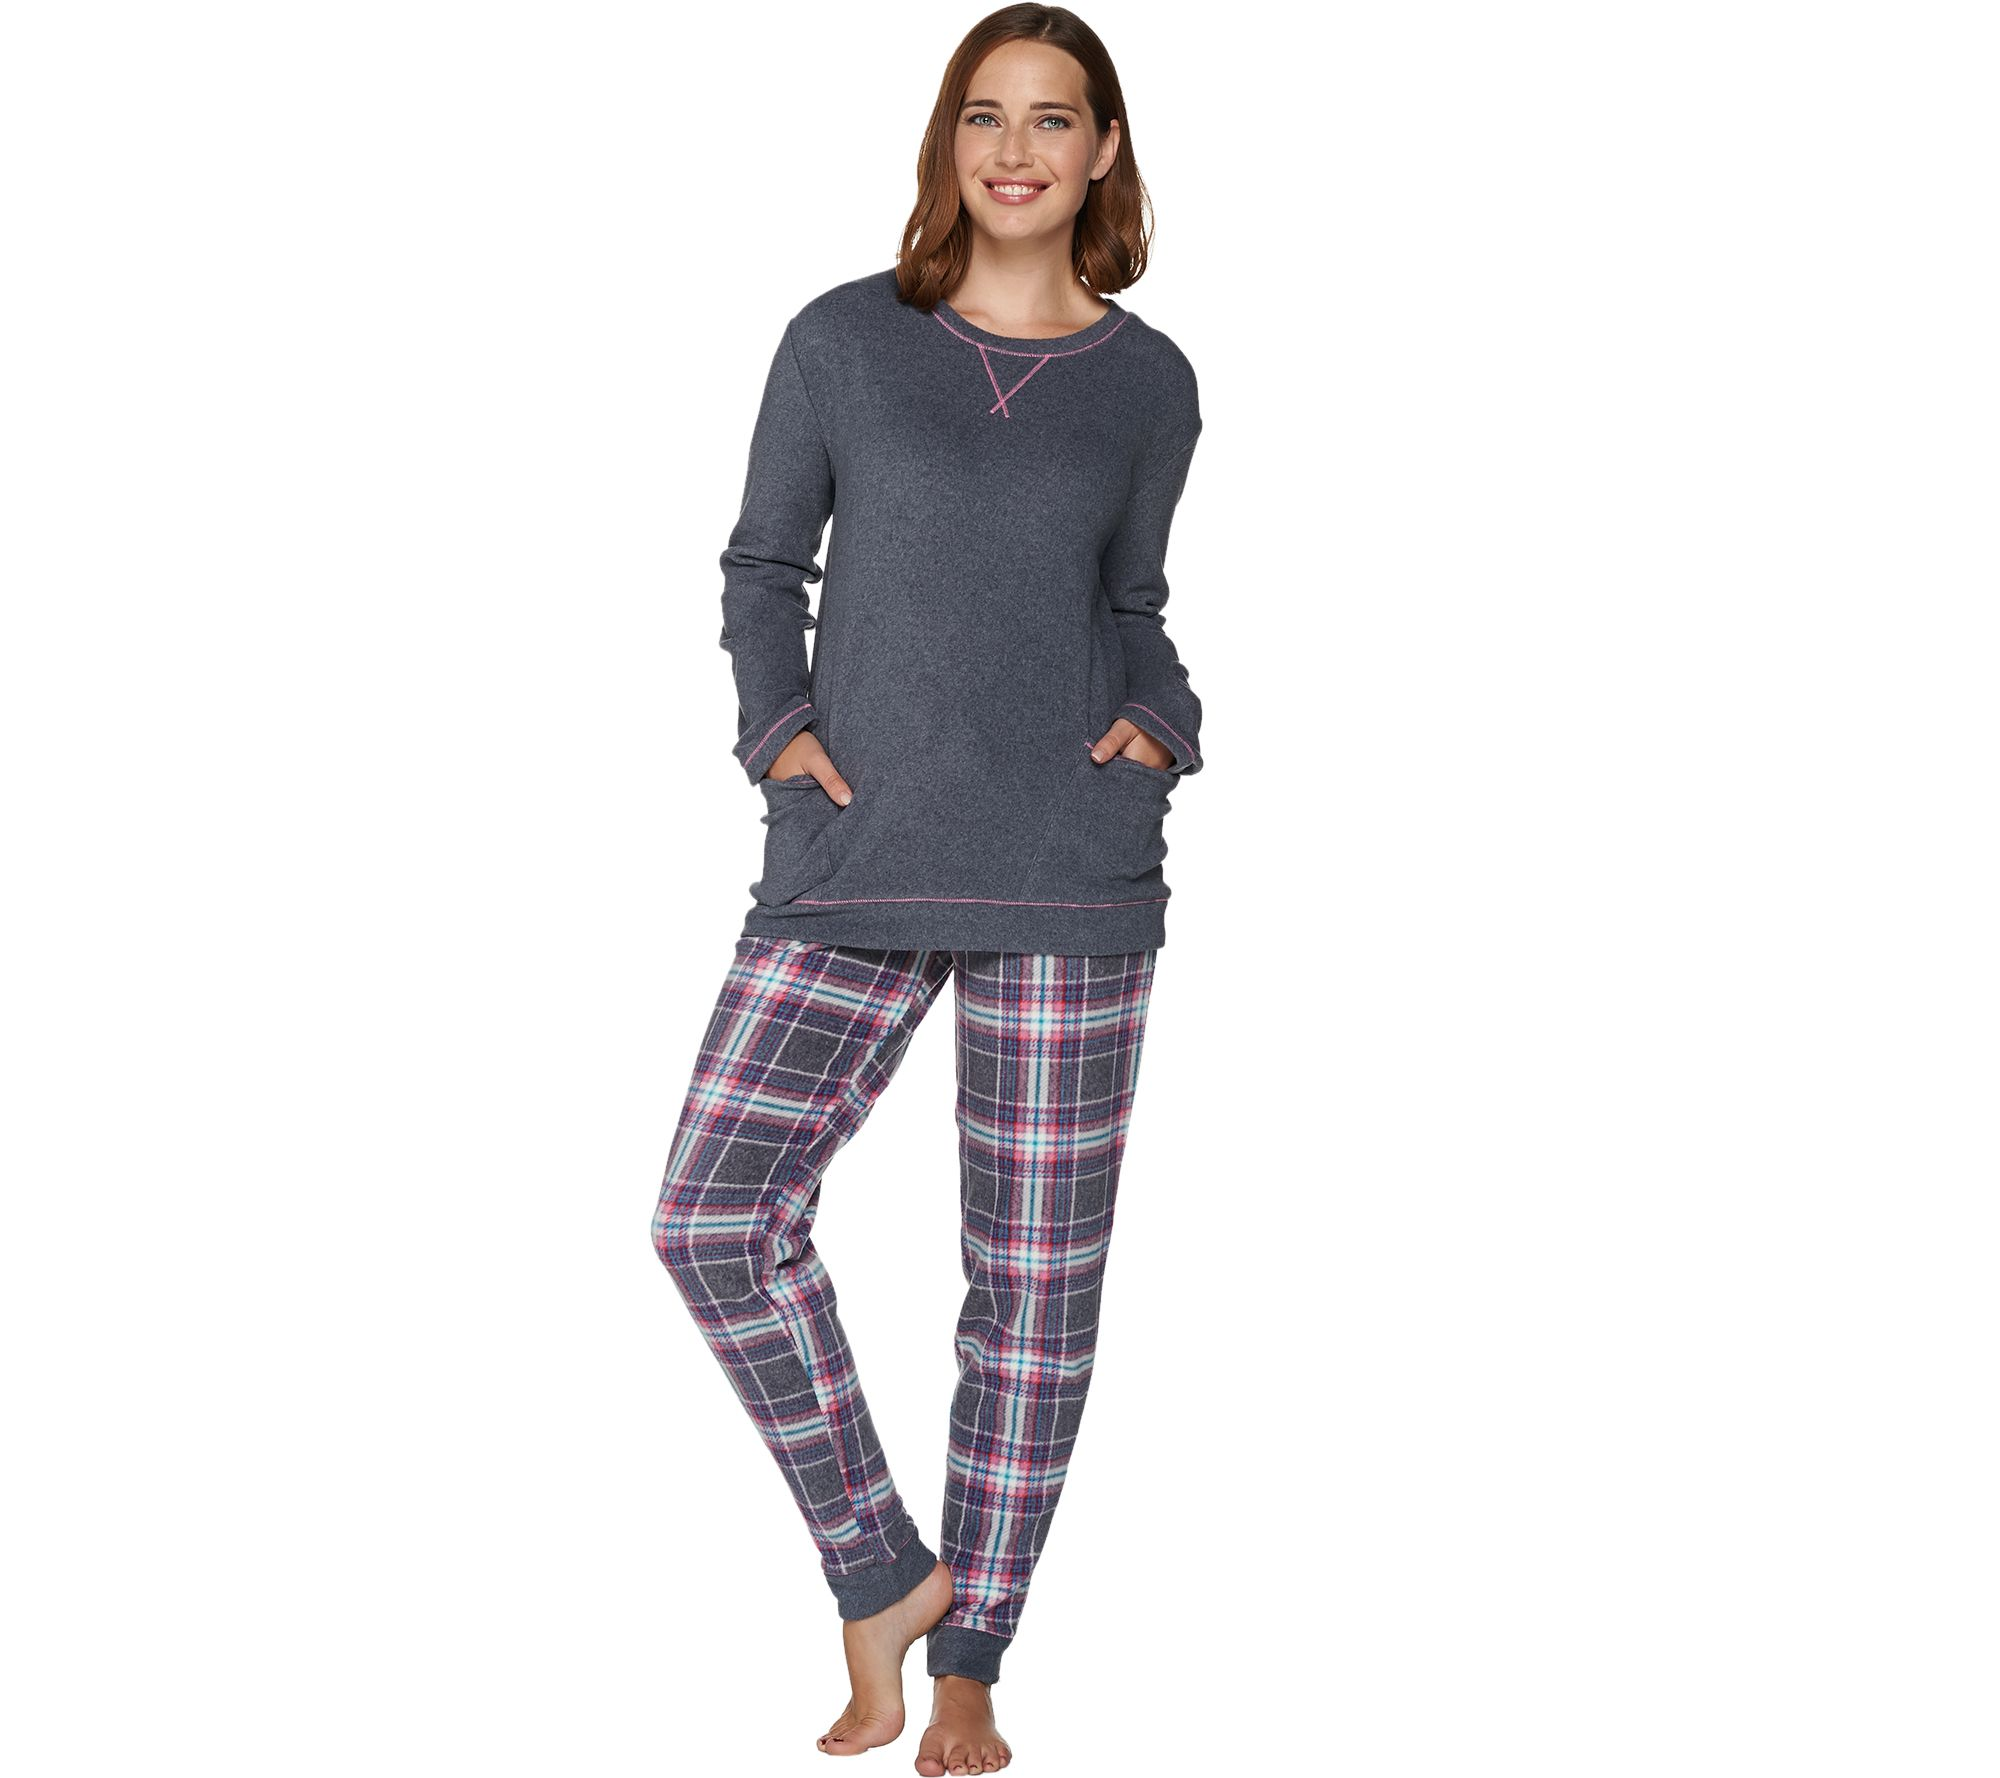 Cuddl Duds. baselayer styles are a terrific choice as thermals or extra-warm sleepwear. Choose fleece or microfiber Cuddl Duds in crew tops and leggings. Thin enough to slip under jeans or tops, Cuddl Duds are amazingly warm and comfortable. And these thermals come in stylish colors and prints.